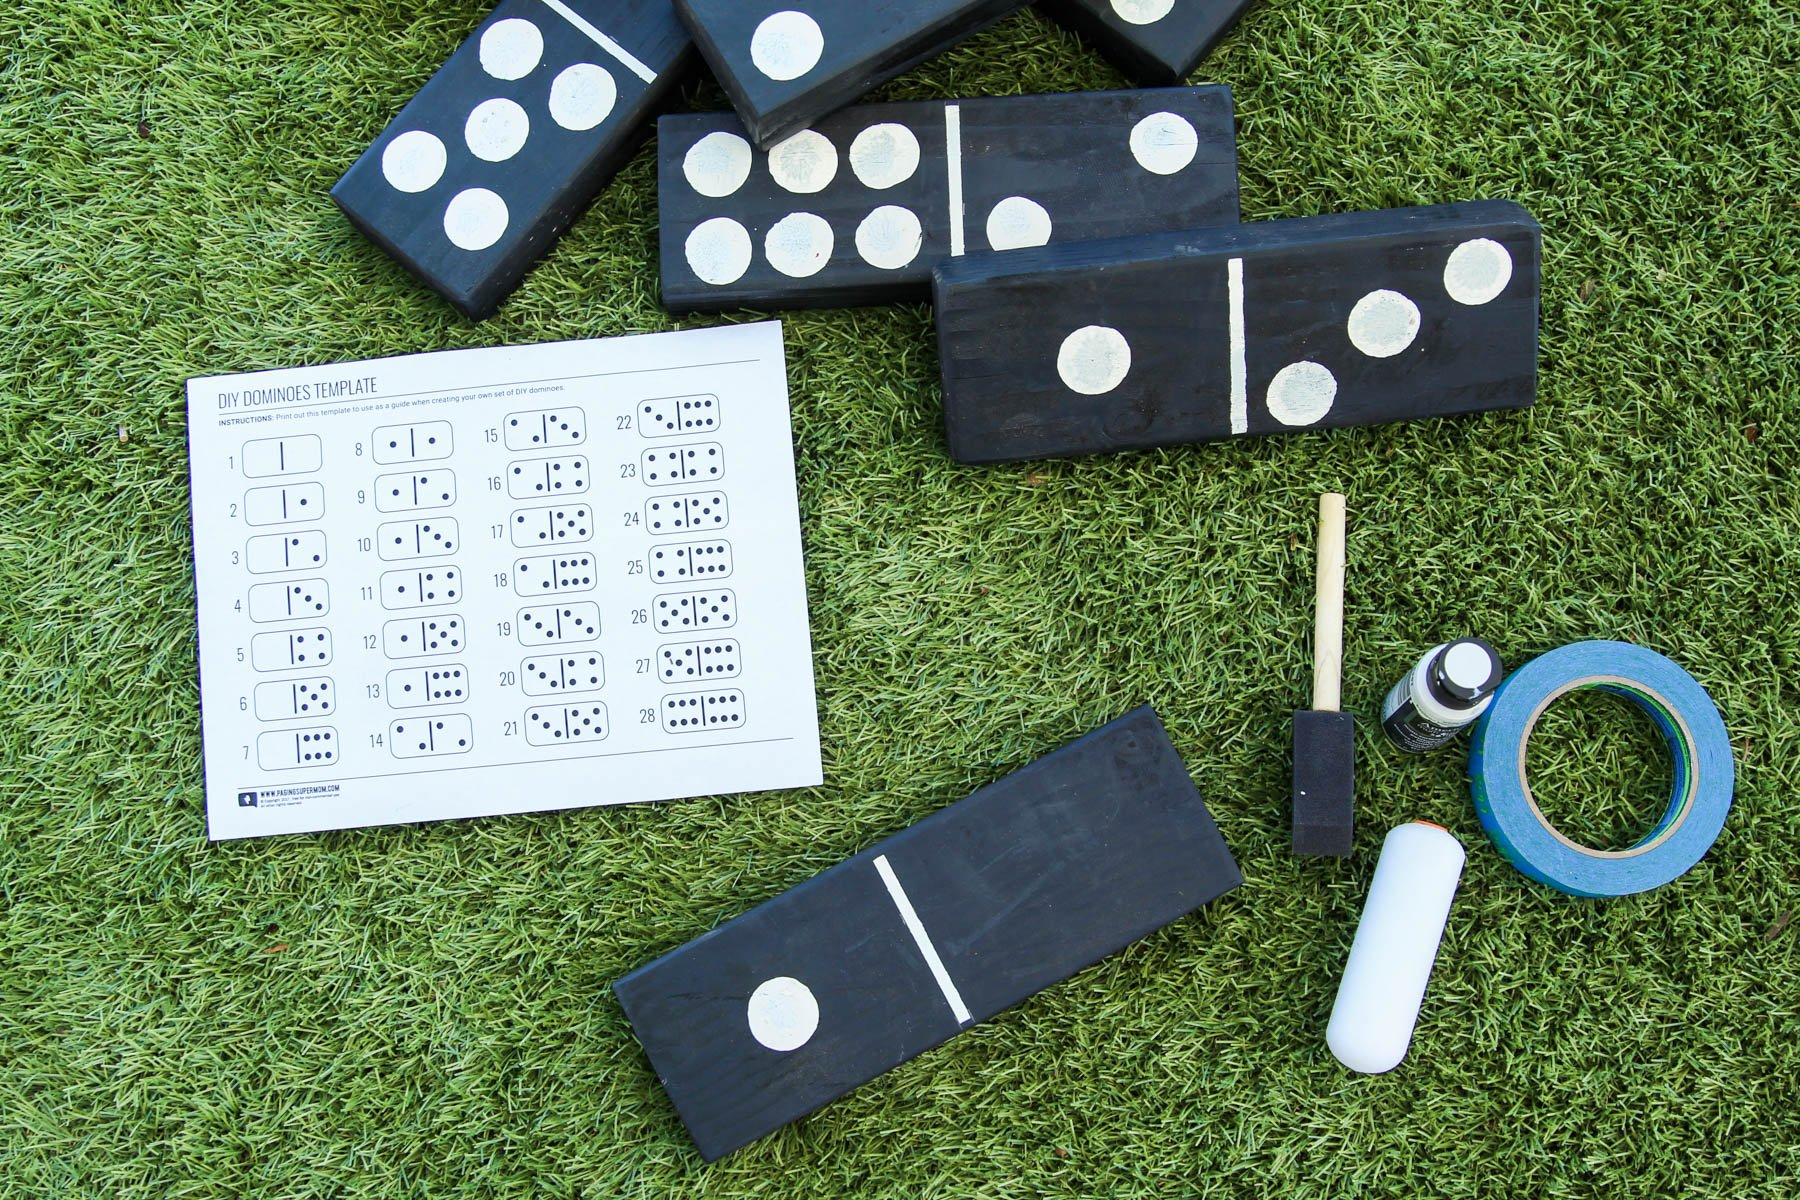 How to Make Giant Yard Dominoes via @PagingSupermom